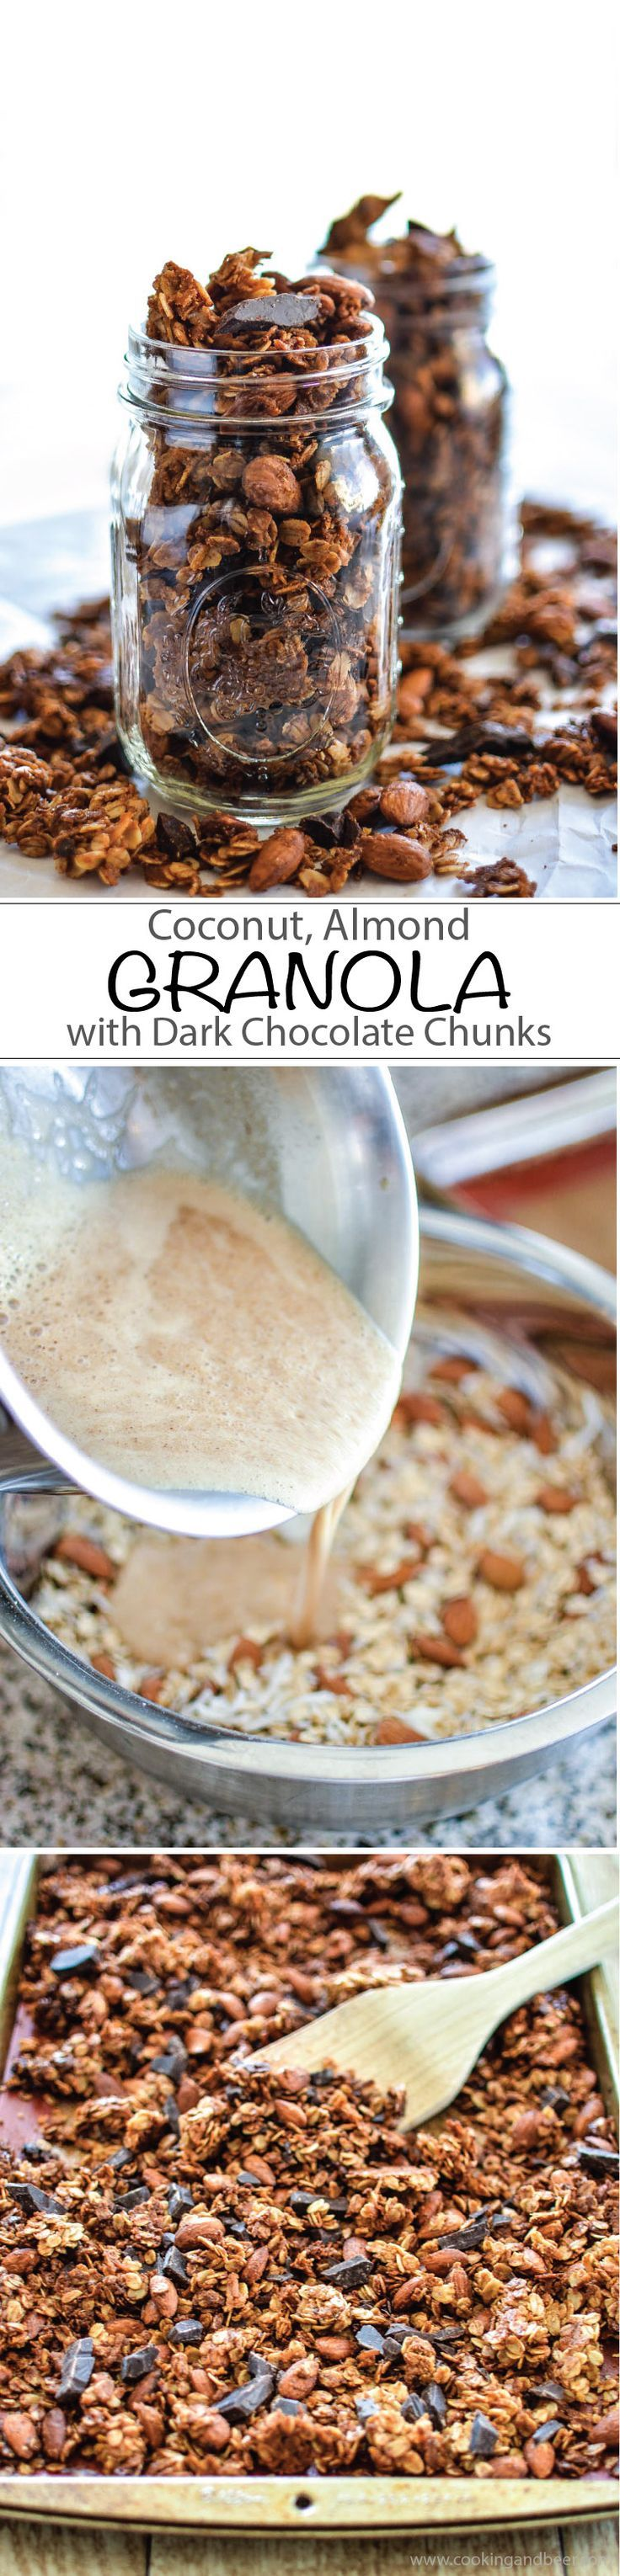 Homemade Coconut Almond Granola with Dark Chocolate Chunks Recipe for breakfast, lunch, dinner or snack!   http://www.cookingandbeer.com